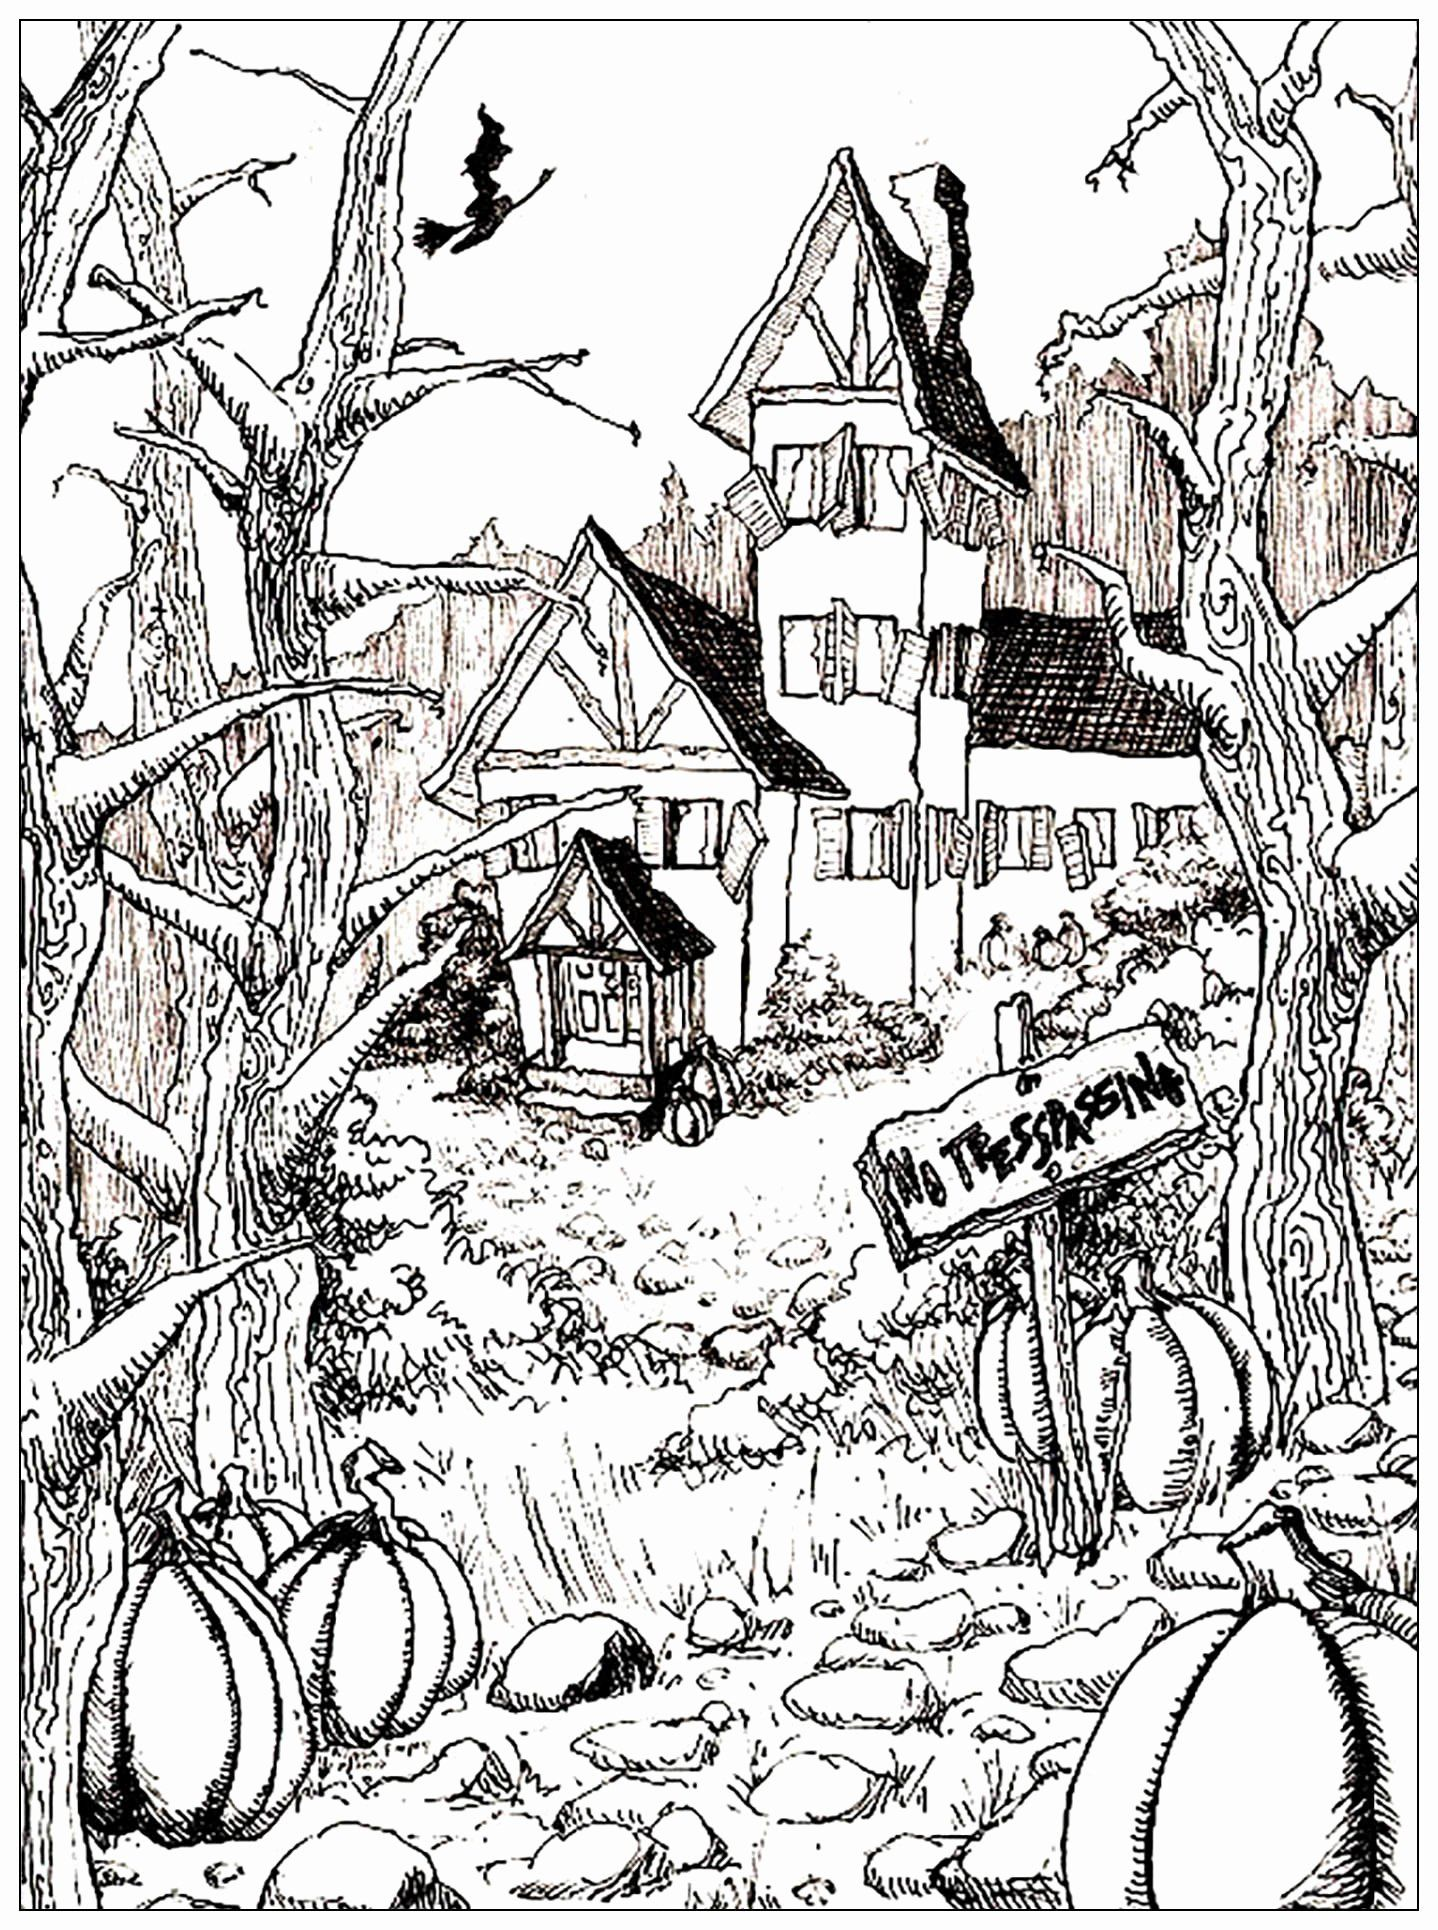 House Coloring Pages For Adults Lovely Haunted House And Pumpkins Ha In 2020 Halloween Coloring Pages Printable Halloween Coloring Pages Scary Halloween Coloring Pages